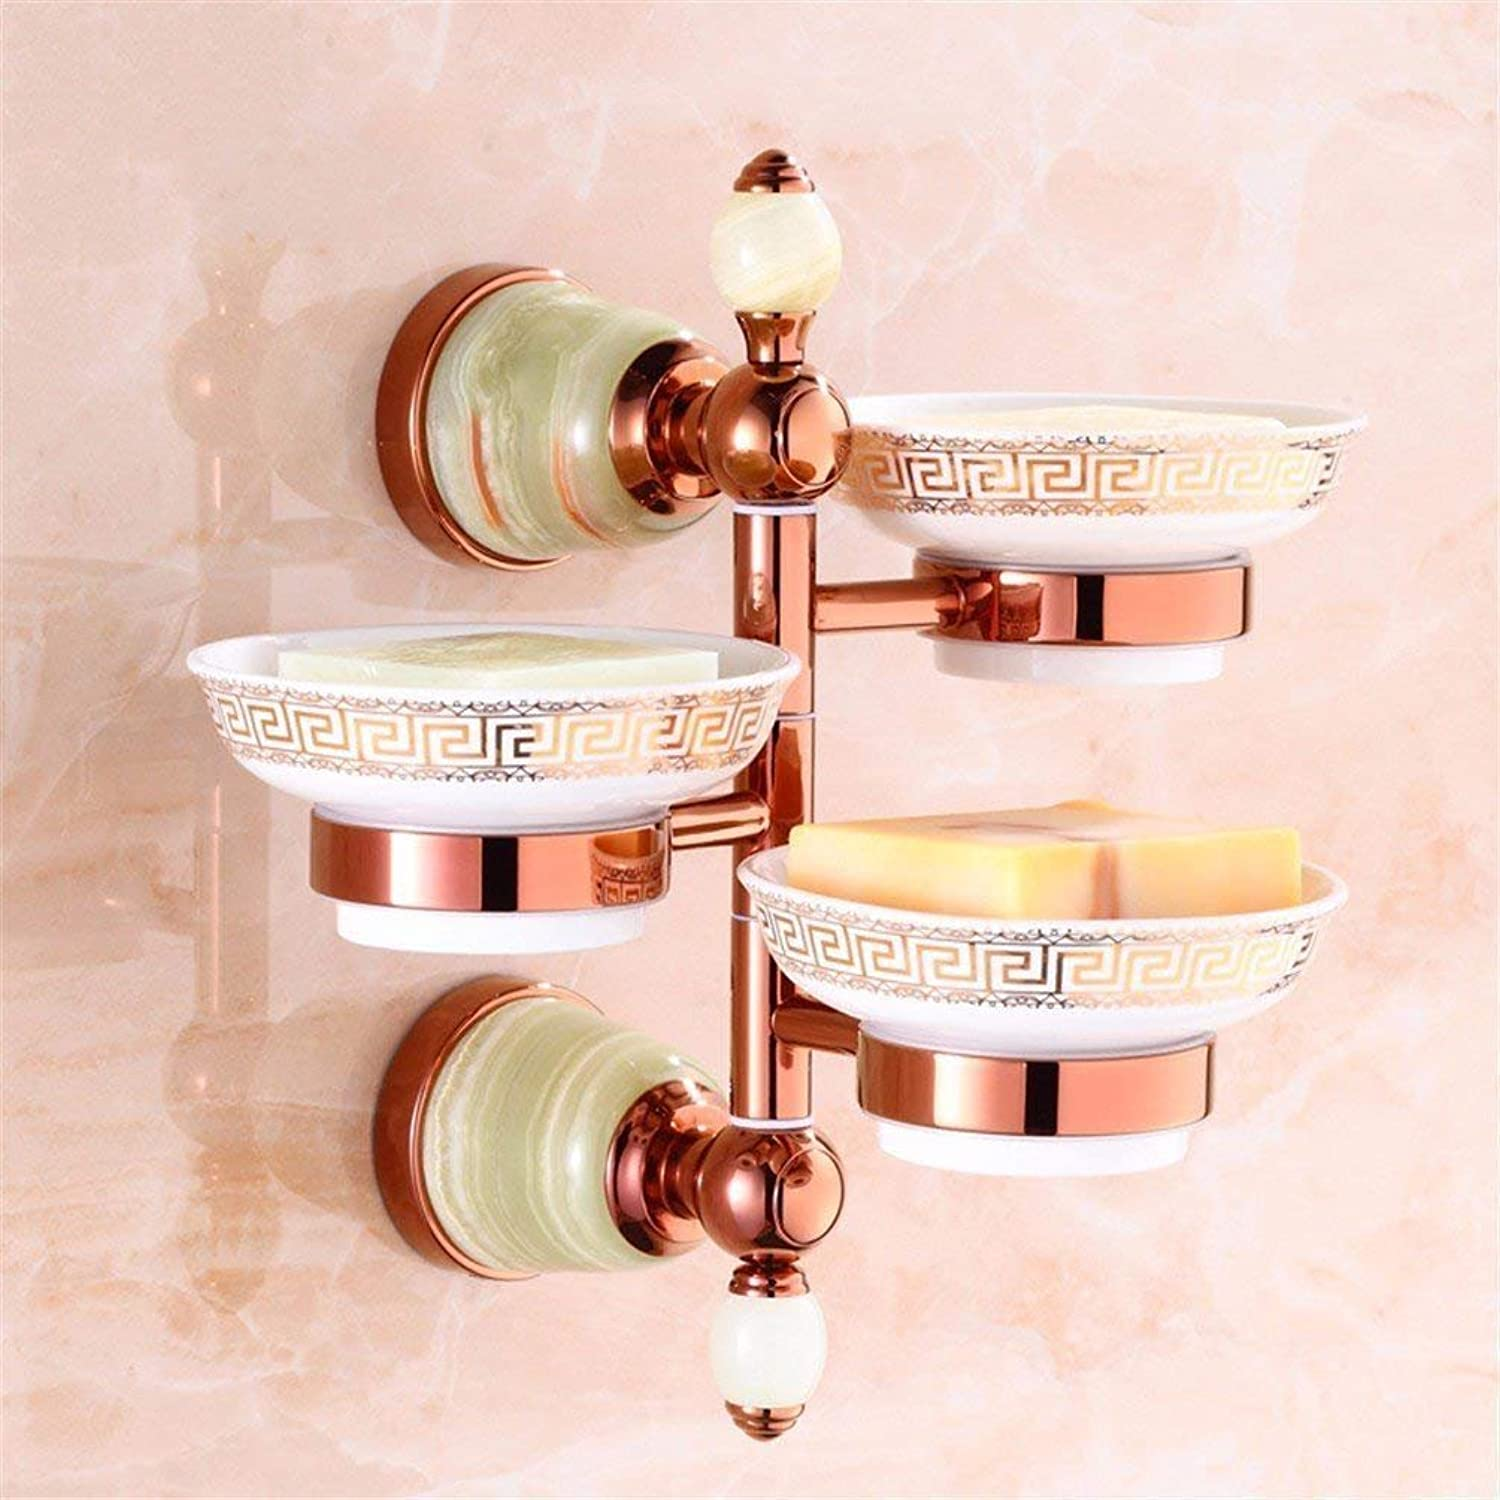 Jade Green Pink gold Small Hair-Bath Towels Accessory Kit Suspension Hook of Copper in The Dishesb,Three